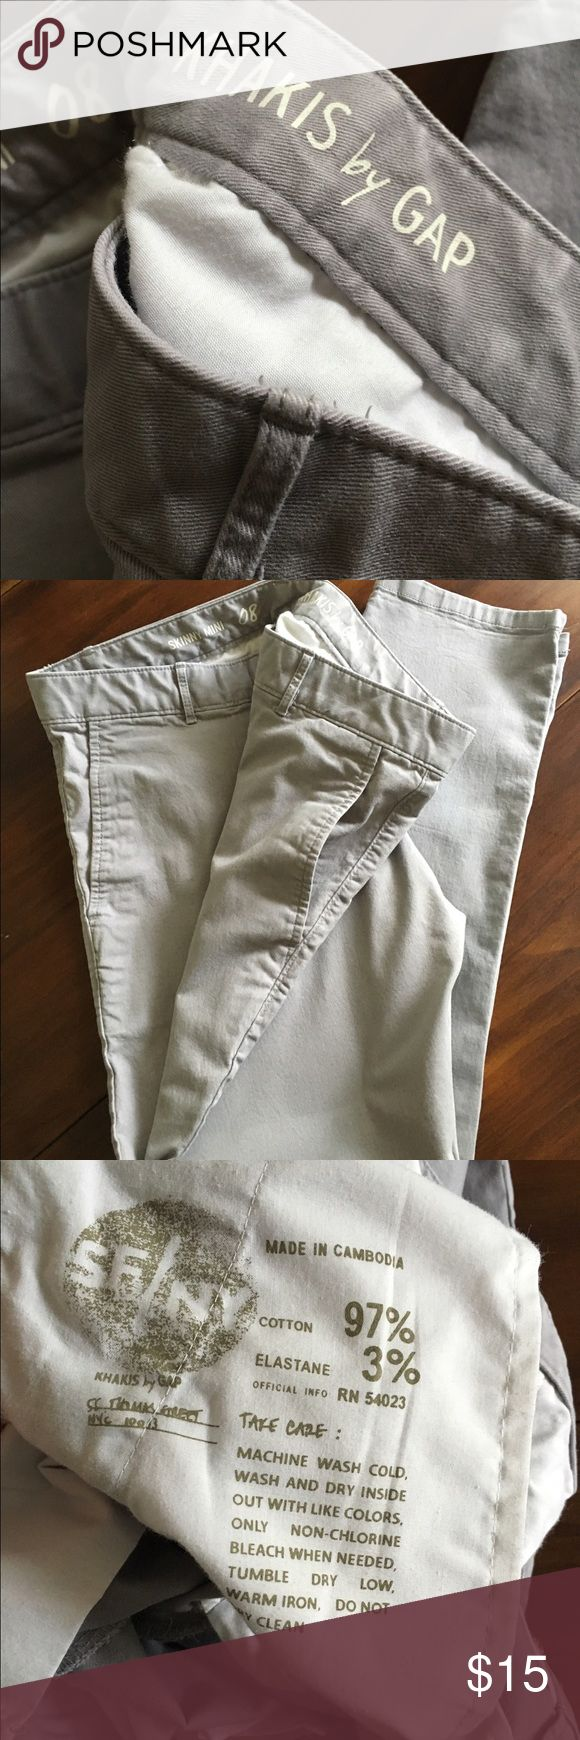 Gap Khakis Skinny Mini Gap Khakis Skinny Minis. Gray. 97 % cotton. They are marked 8 but I'm a 4 and they fit me perfectly. GAP Pants